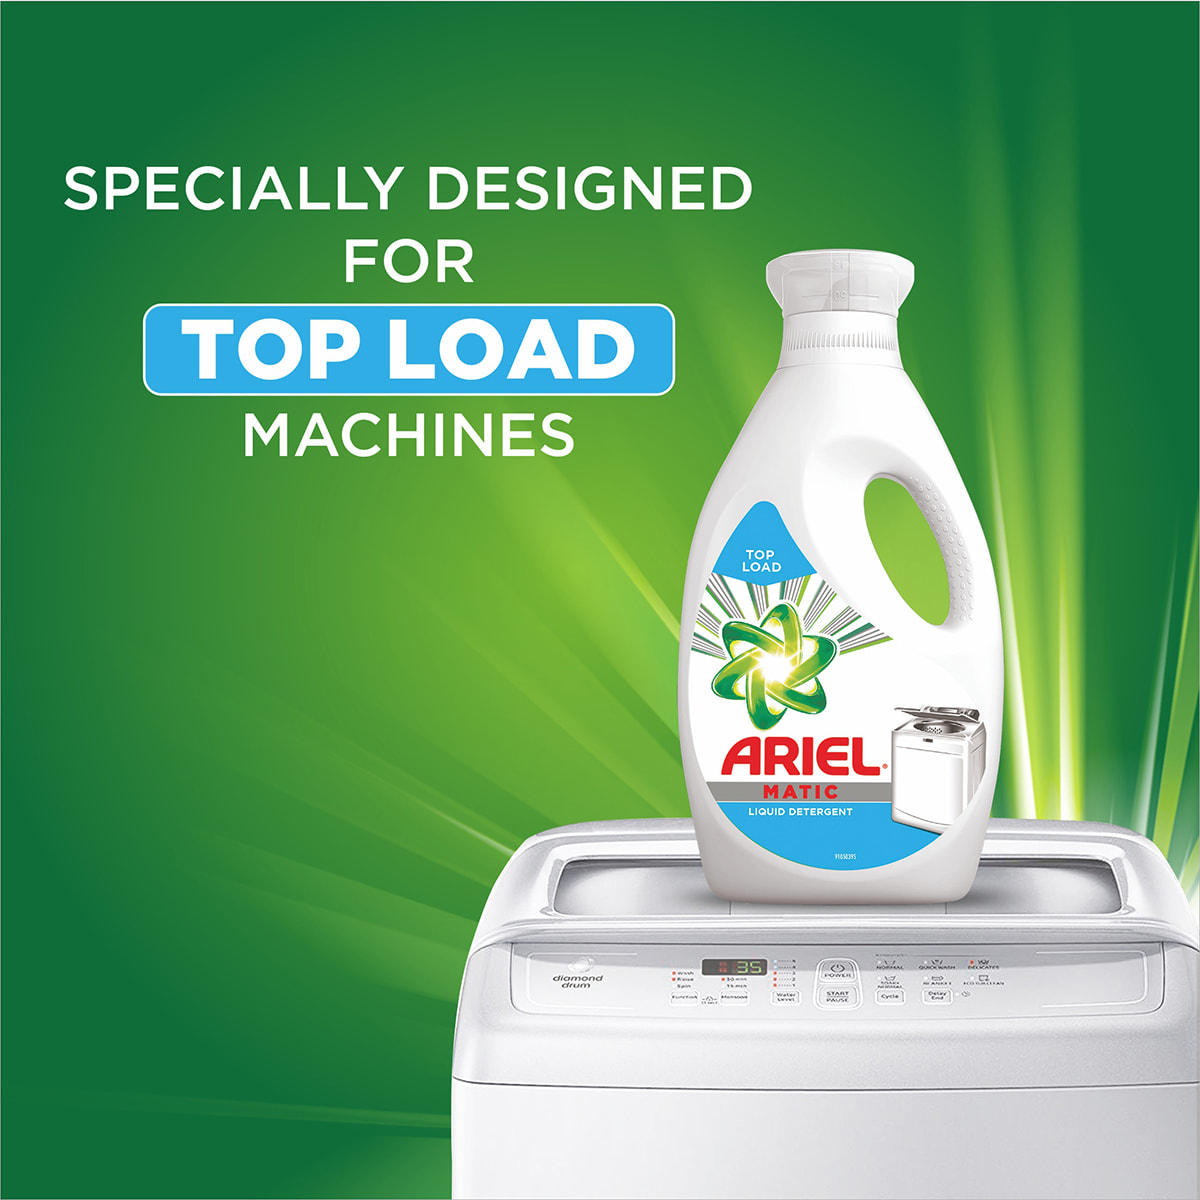 Specially designed for top load washing machines